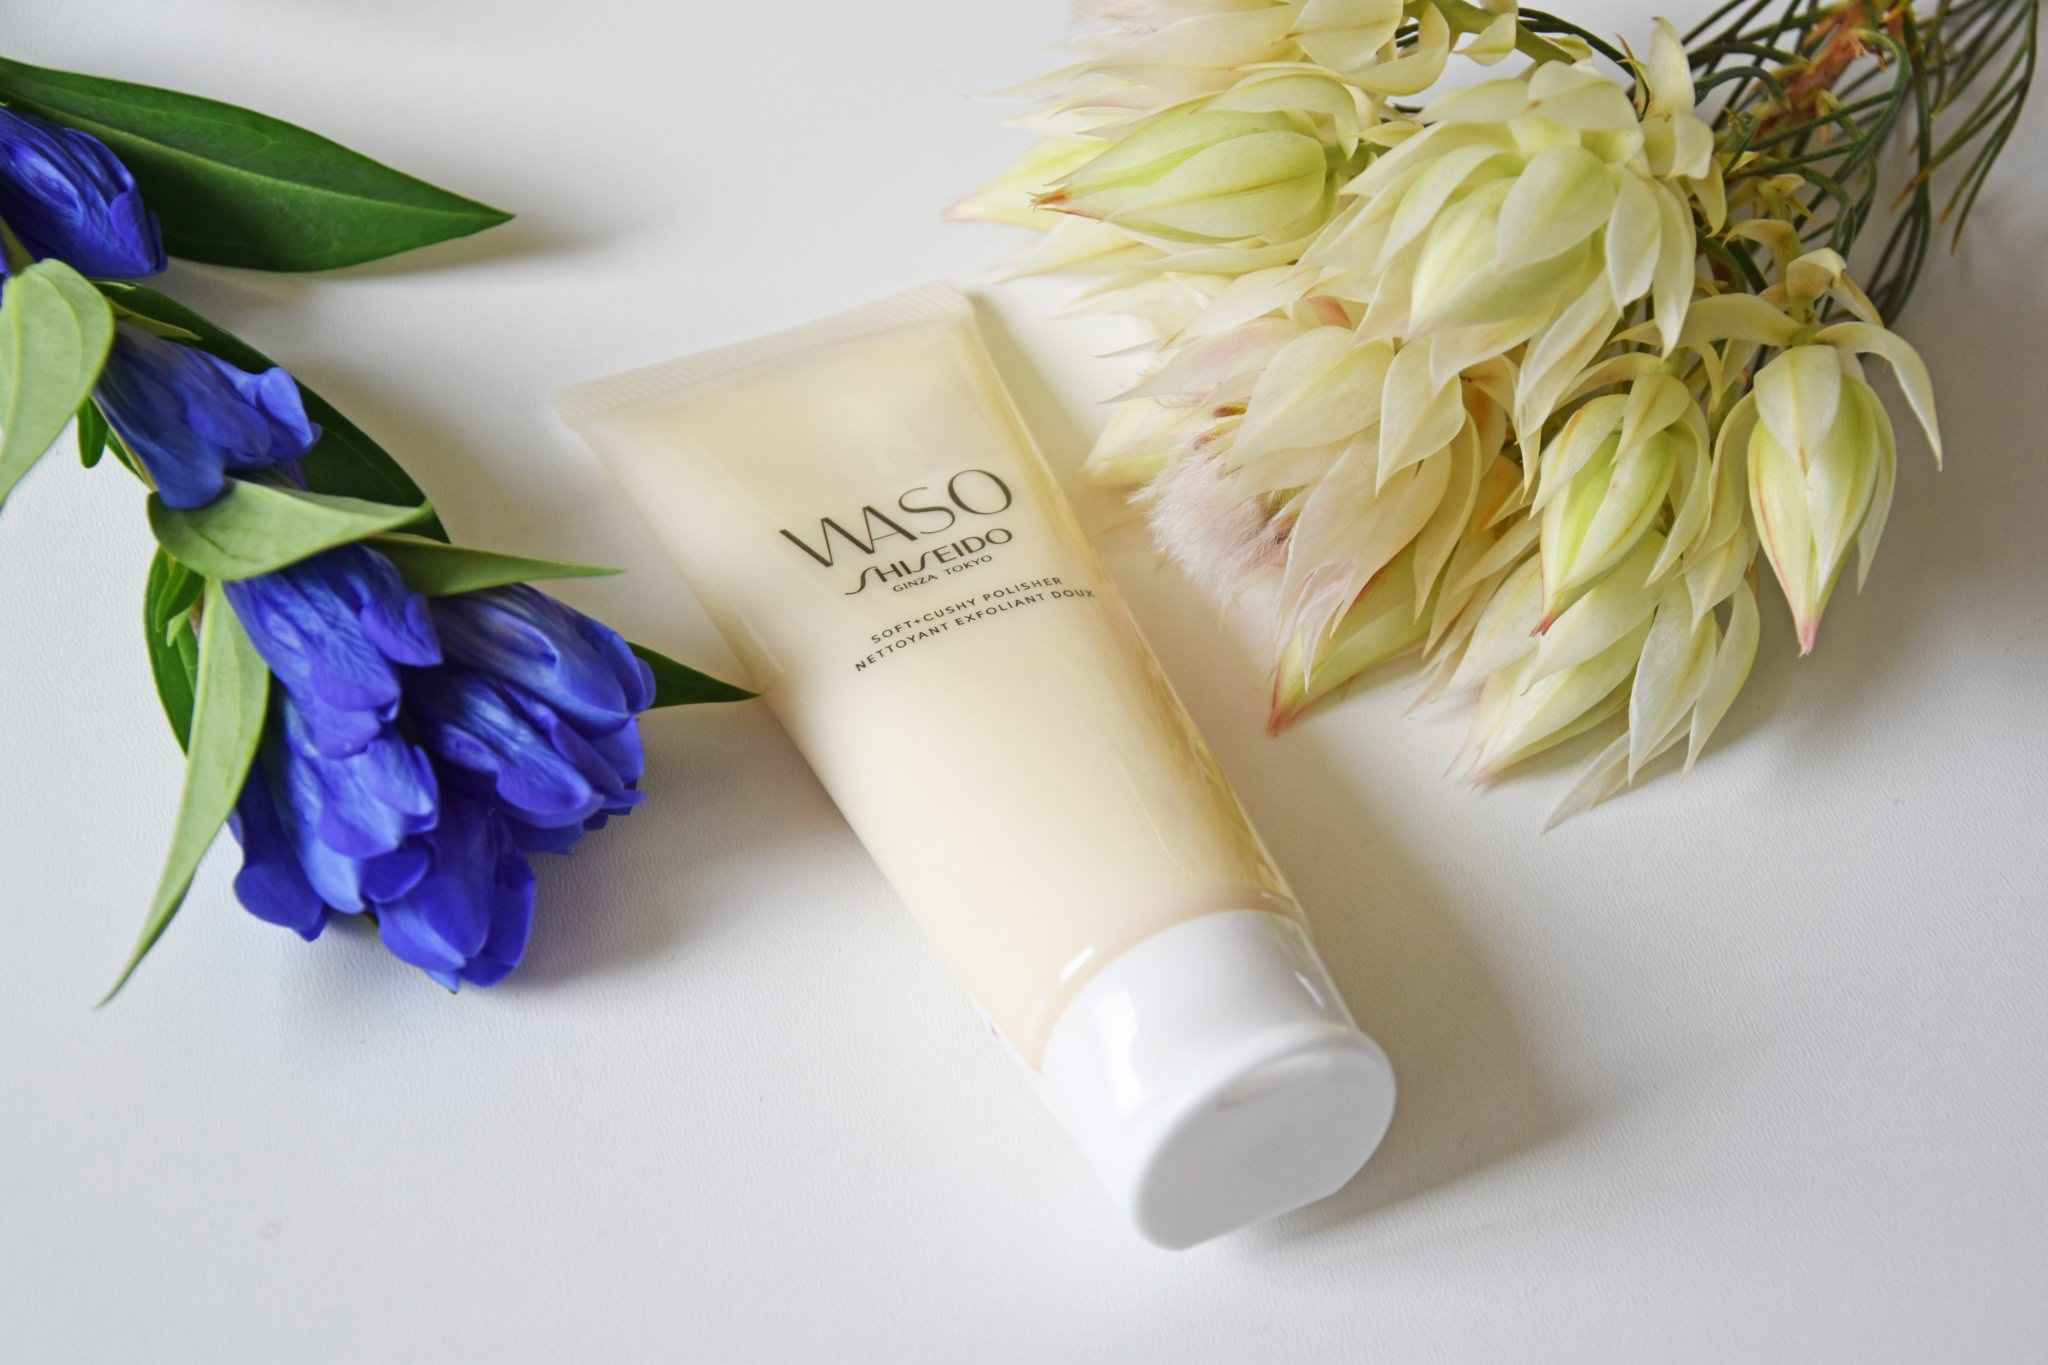 Shiseido - WASO: Soft+Cushy Polisher